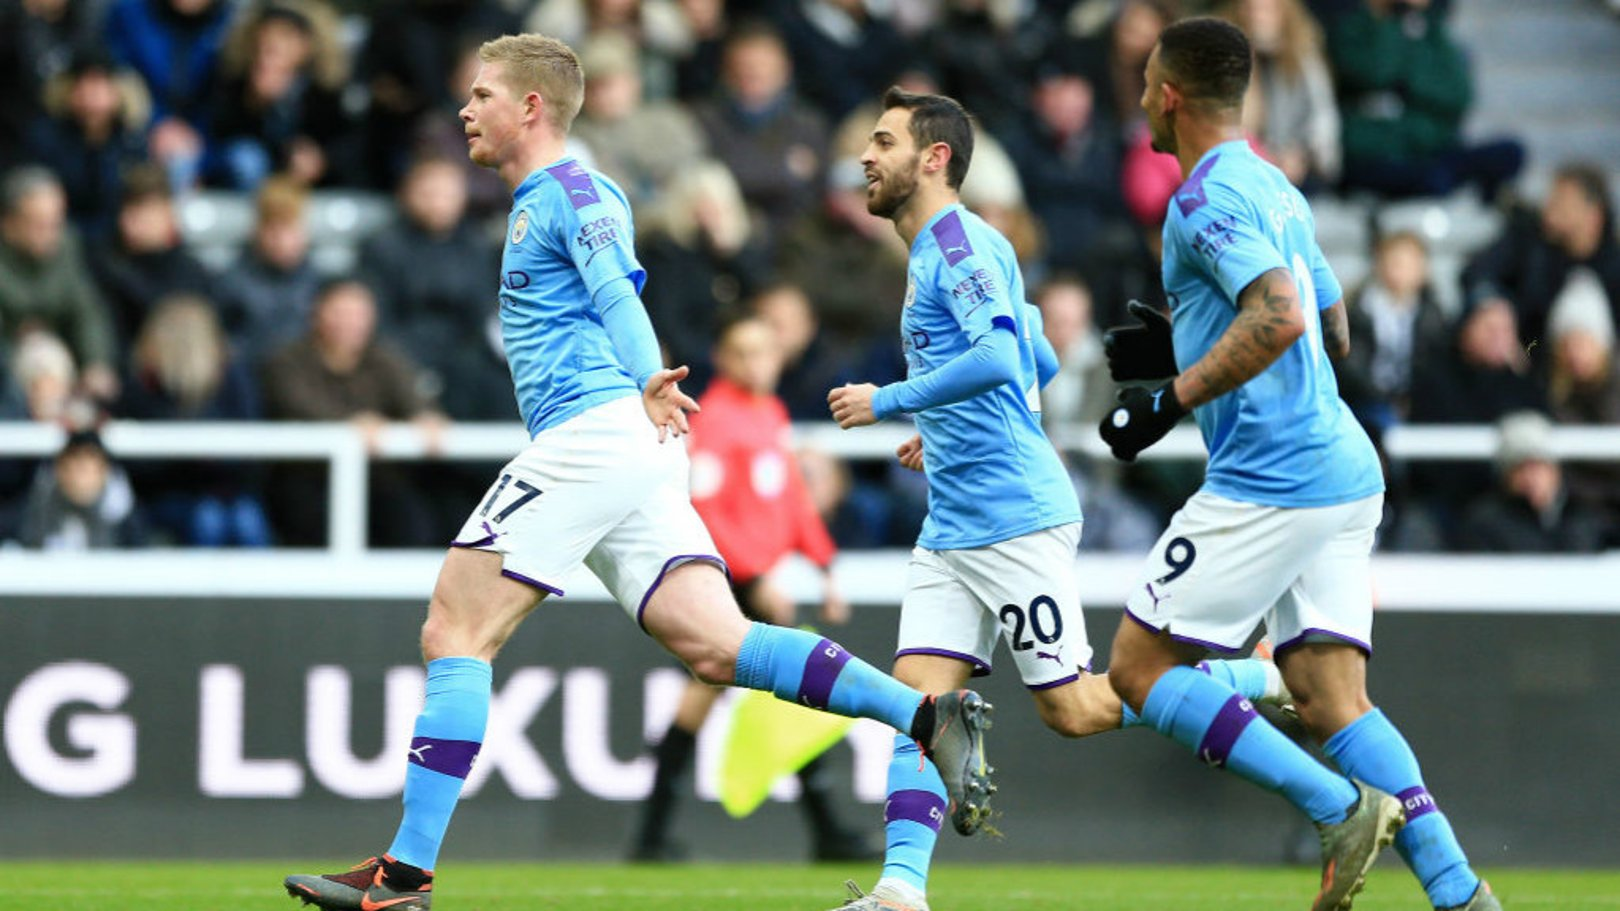 TOP DRAW: Kevin De Bruyne celebrates against Newcastle United.